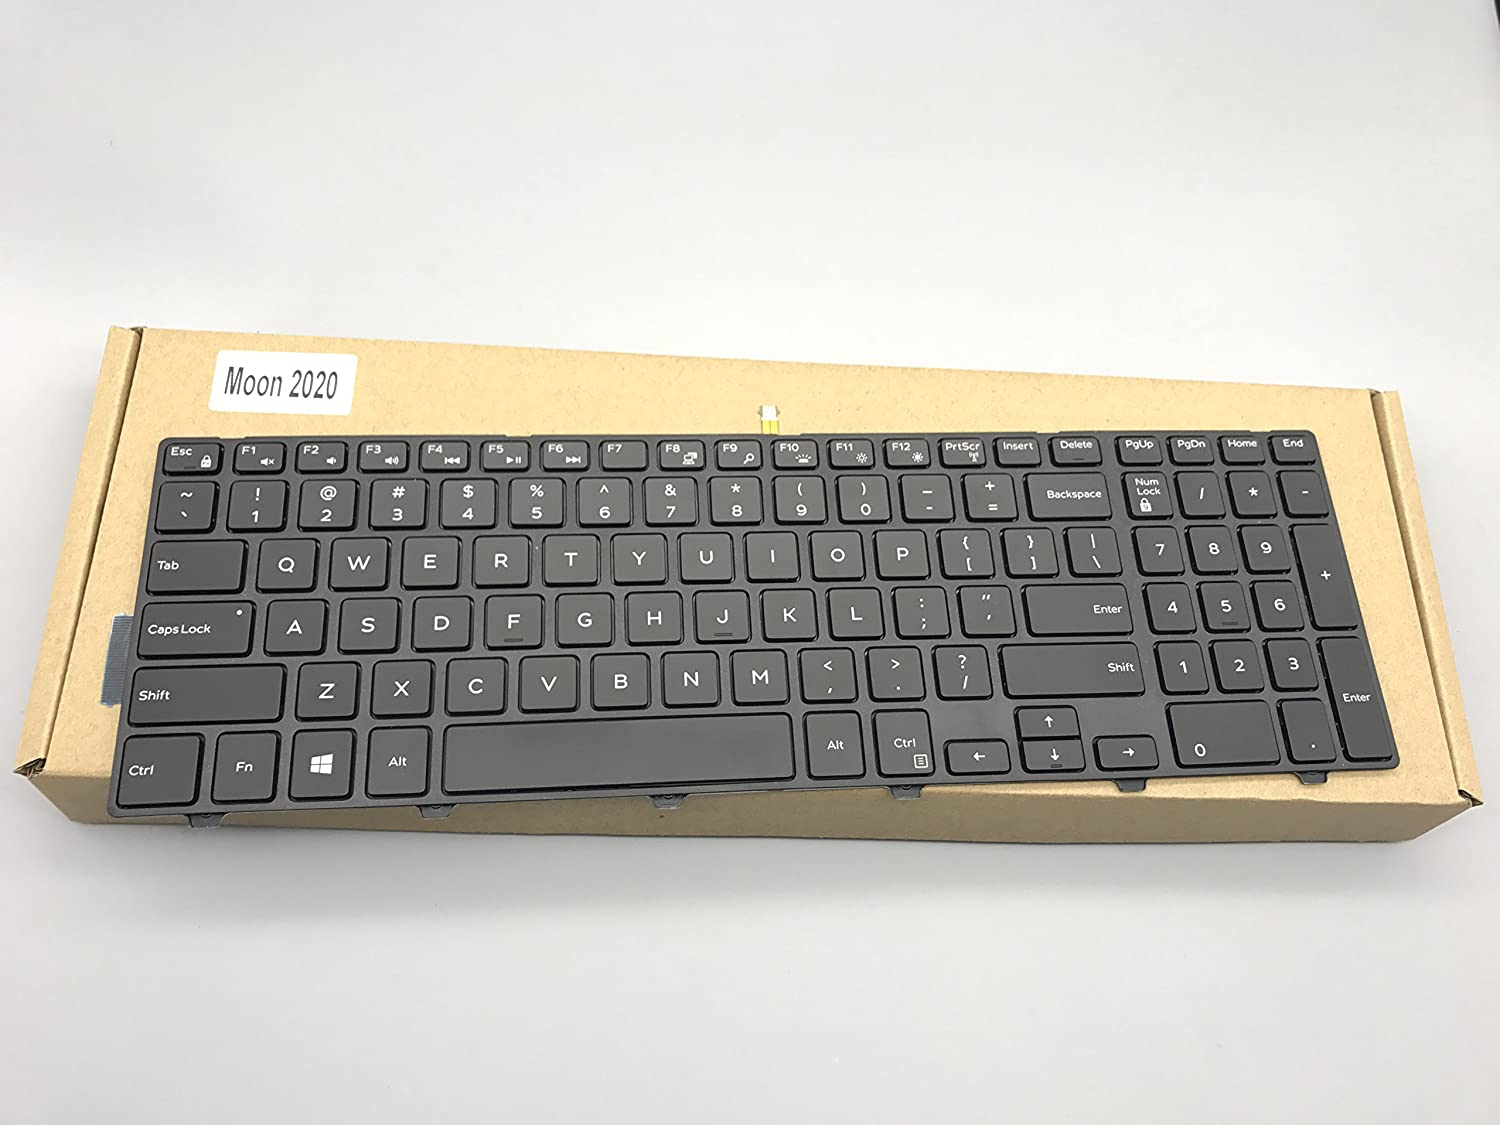 Replacement Keyboard for Dell Inspiron 15 3000 Series 3541 3542 3543 3552 3553 3558 3559 / Vostro 15 3000 Series 3546 3549 3555 3558 3559 New Version Laptop Backlight 0JYP58 OJYP58 G7P48 0G7P48 OG7P48